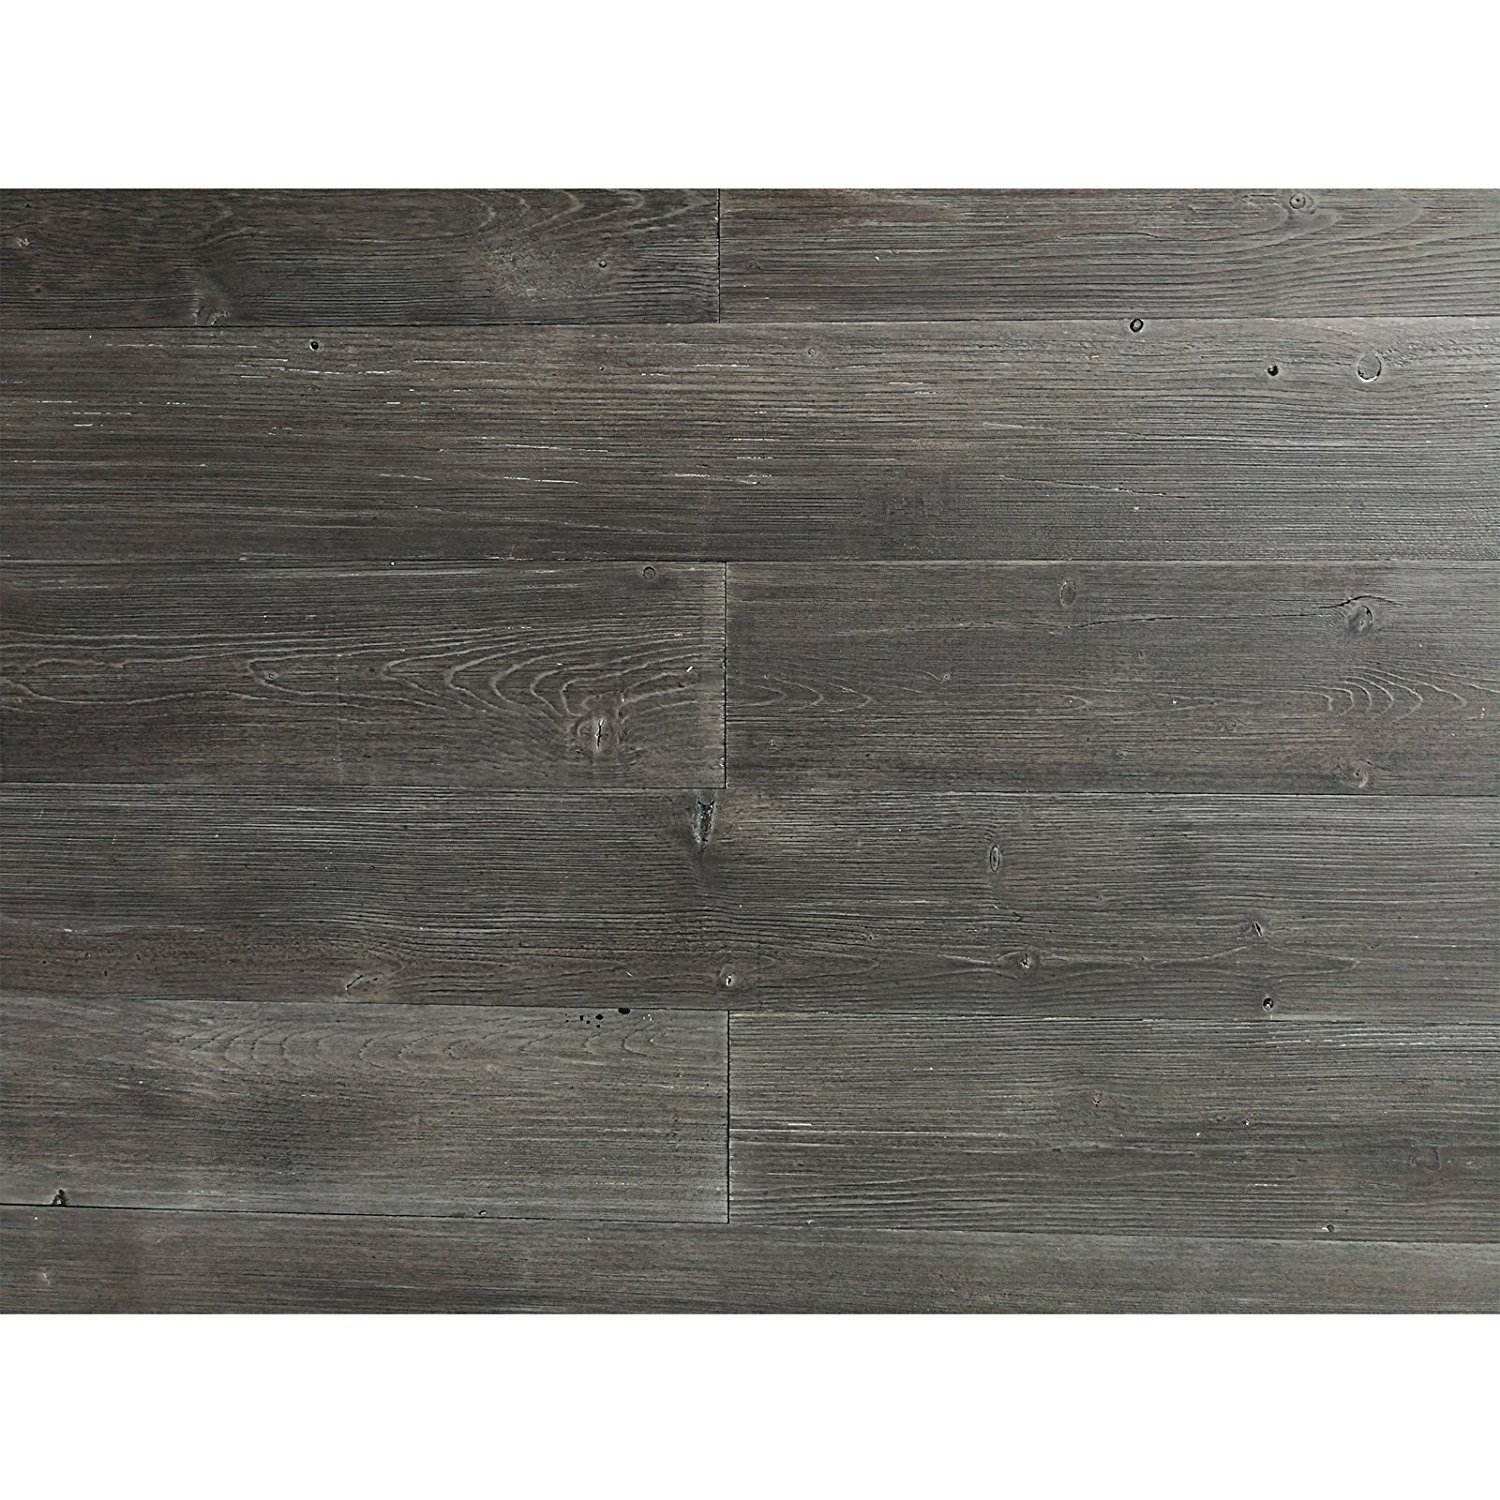 Art3d Reclaimed Wood Wall Panels Easy Peel and Stick Wood Plank, Grey (16 Sq Ft)